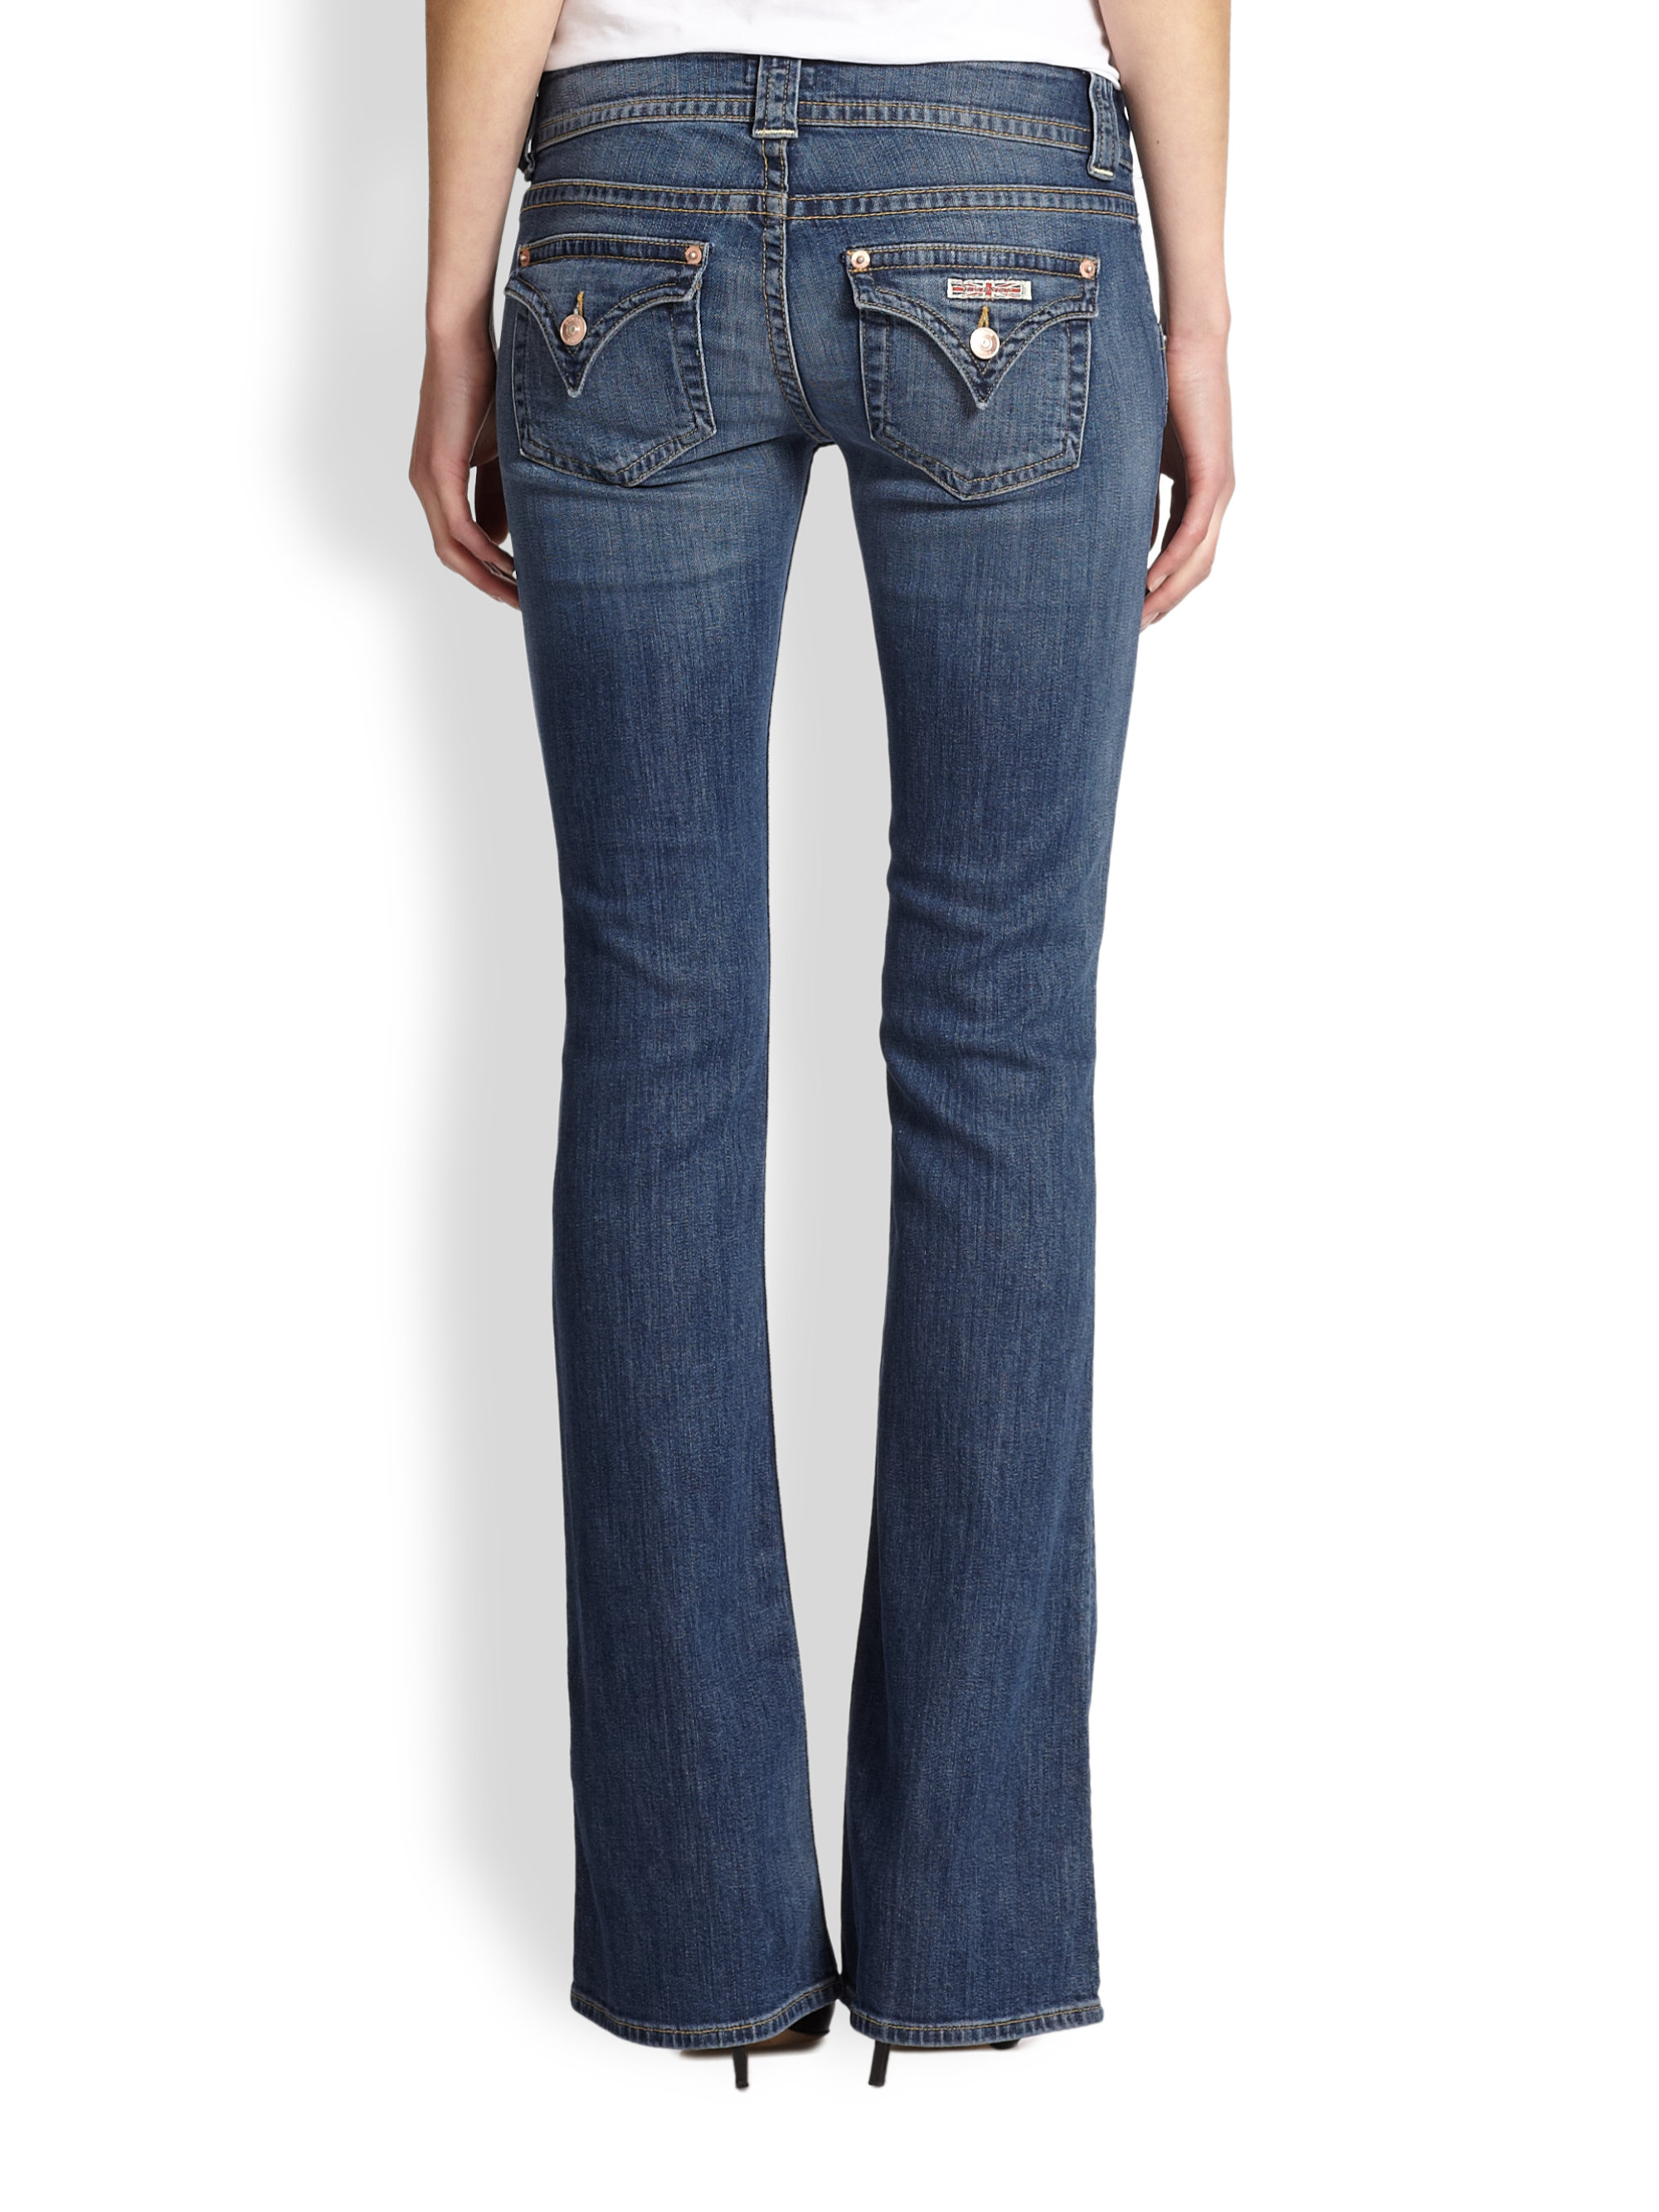 Hudson Jeans Blake Slim Fit Jeans (Bullet). Faded blue stretch-denim jeans are made in a slim fit to offer just the right amount of room in the thighs without compromising the modern profile.